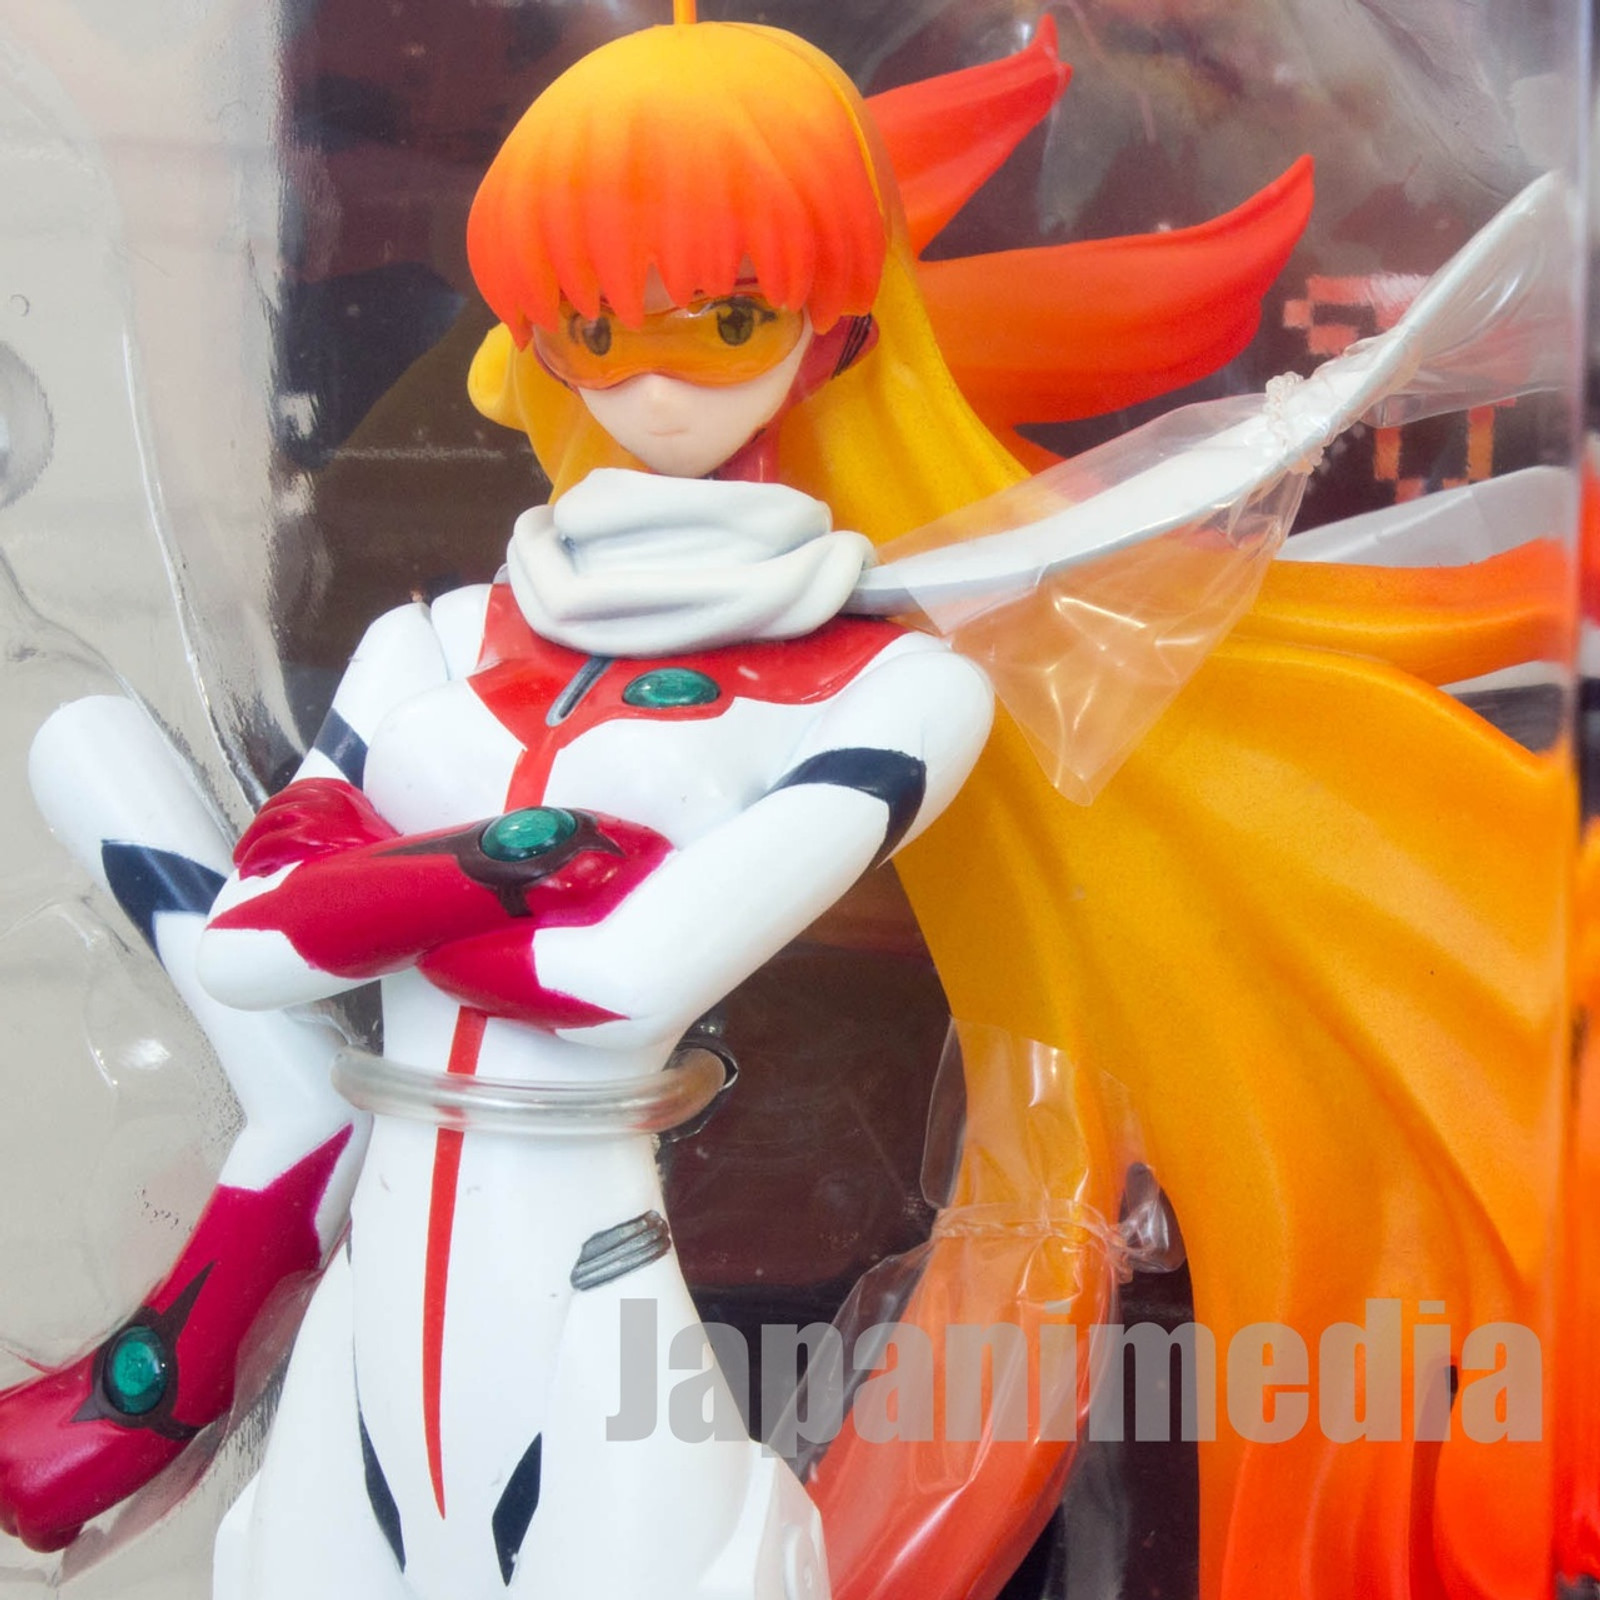 Diebuster Aim For the Top 2! Nono Figure Kaiyodo JAPAN ANIME GAINAX BOME